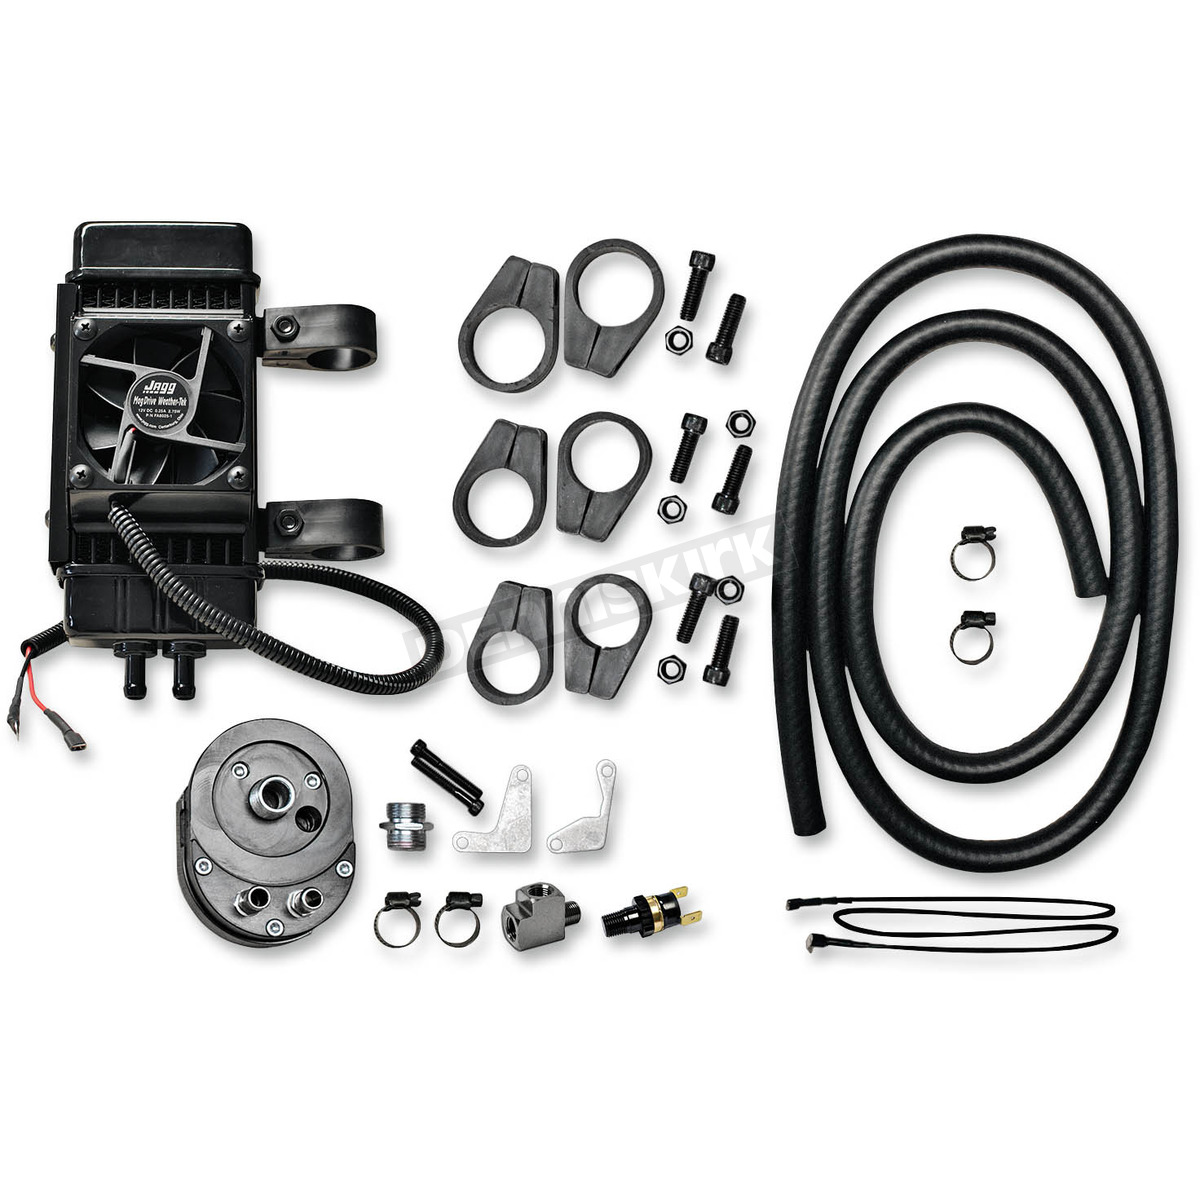 Jagg Vertical Frame-Mount Fan-Assisted Oil Cooler Kit